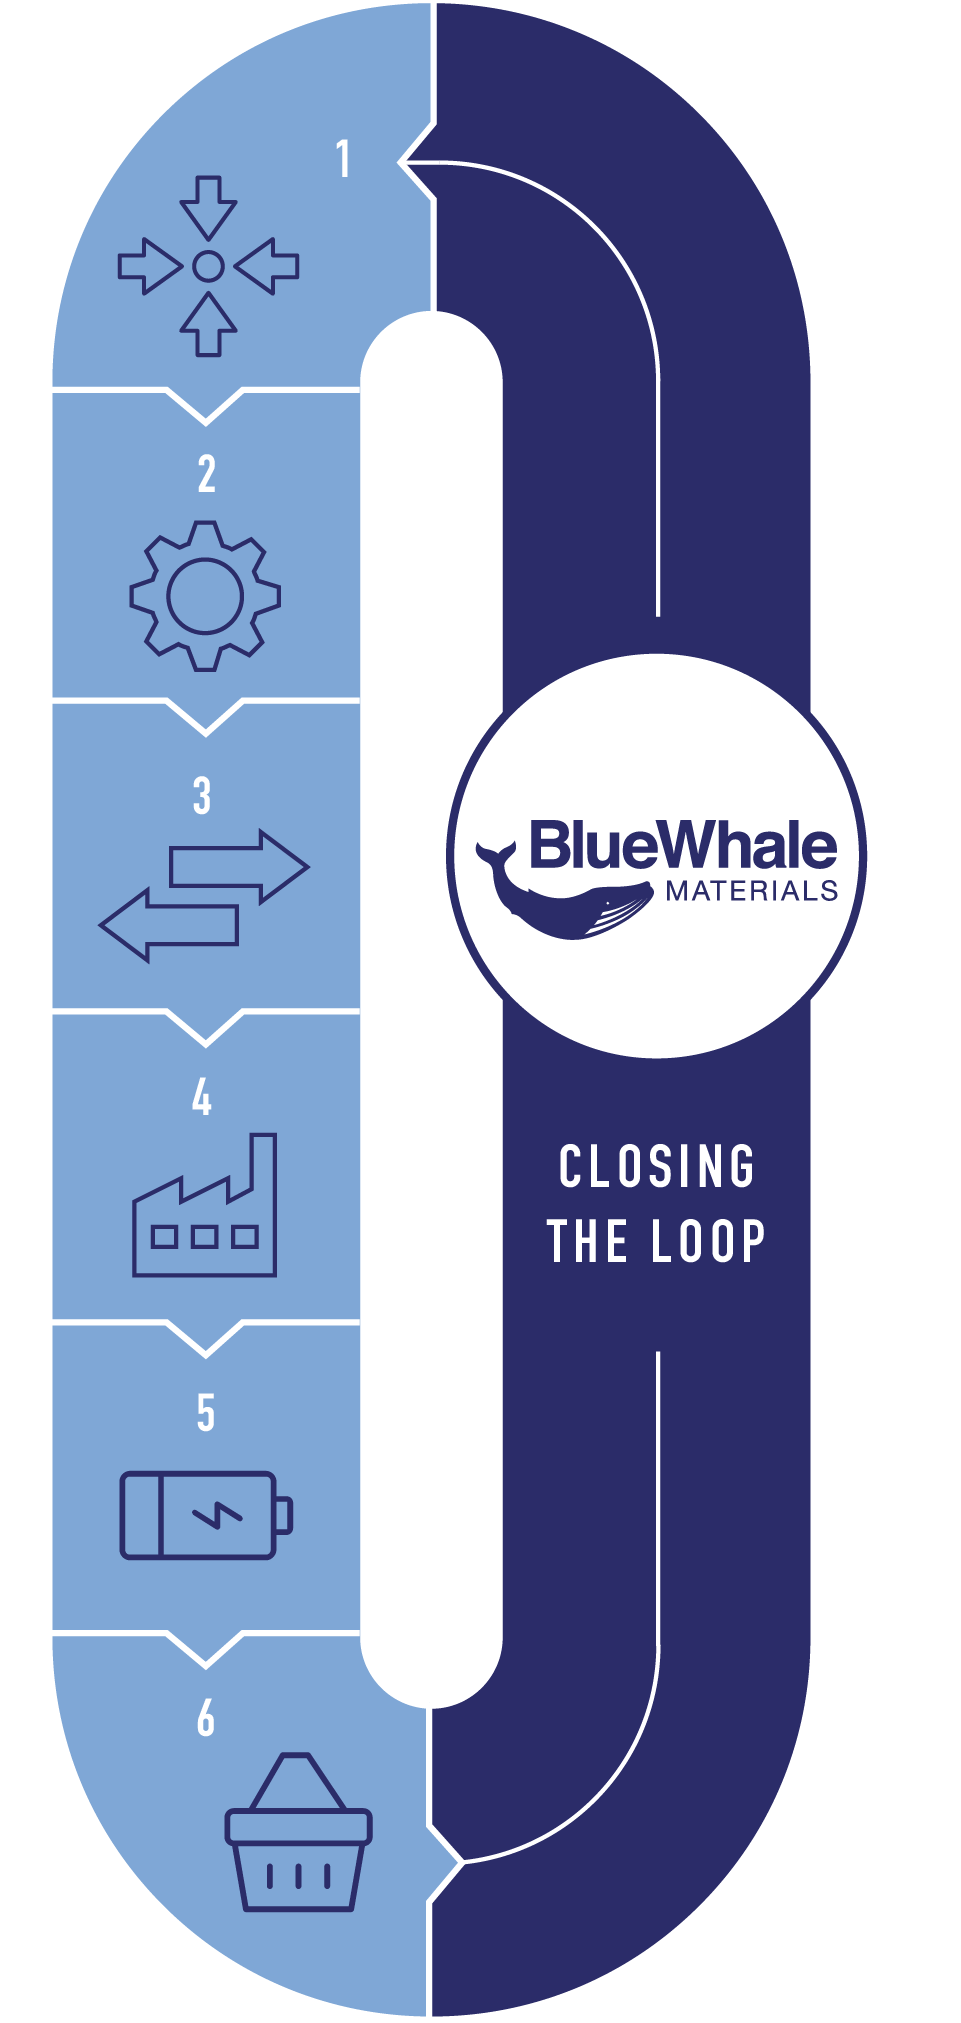 BlueWhale_Assets_closedloop2.png